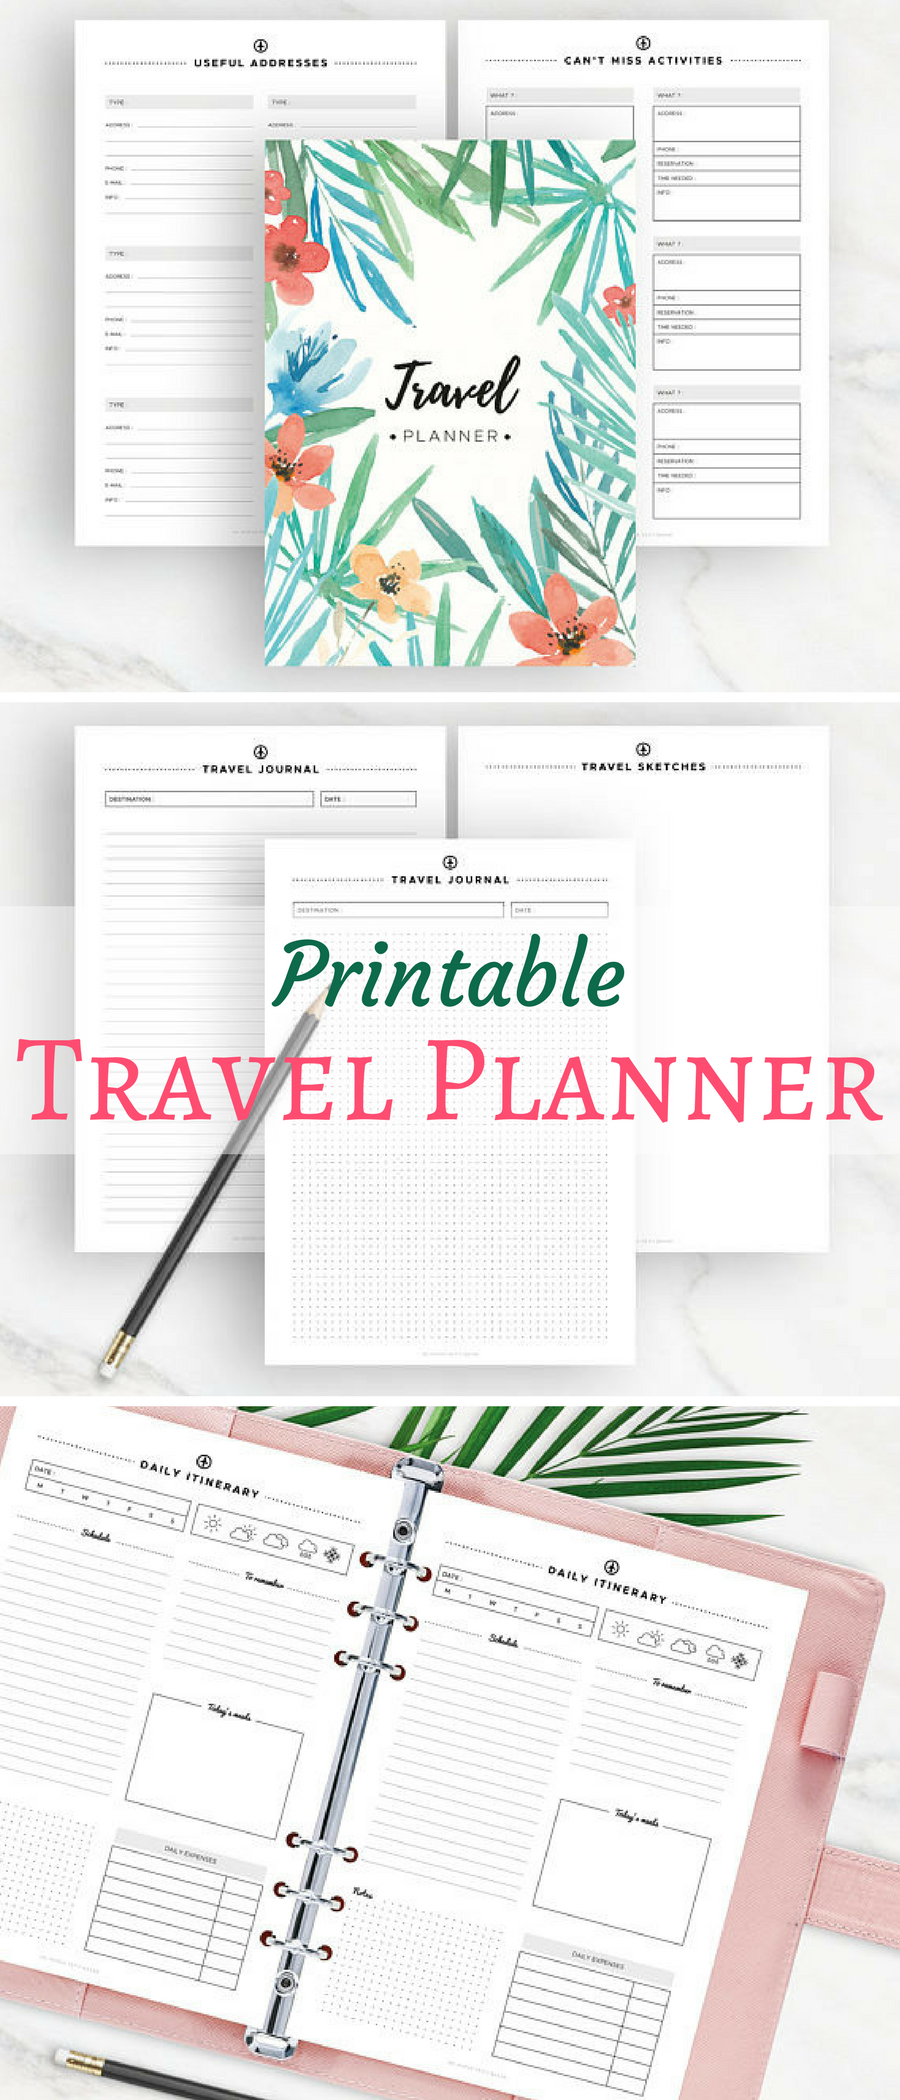 travel planner printable planner packing list road map daily